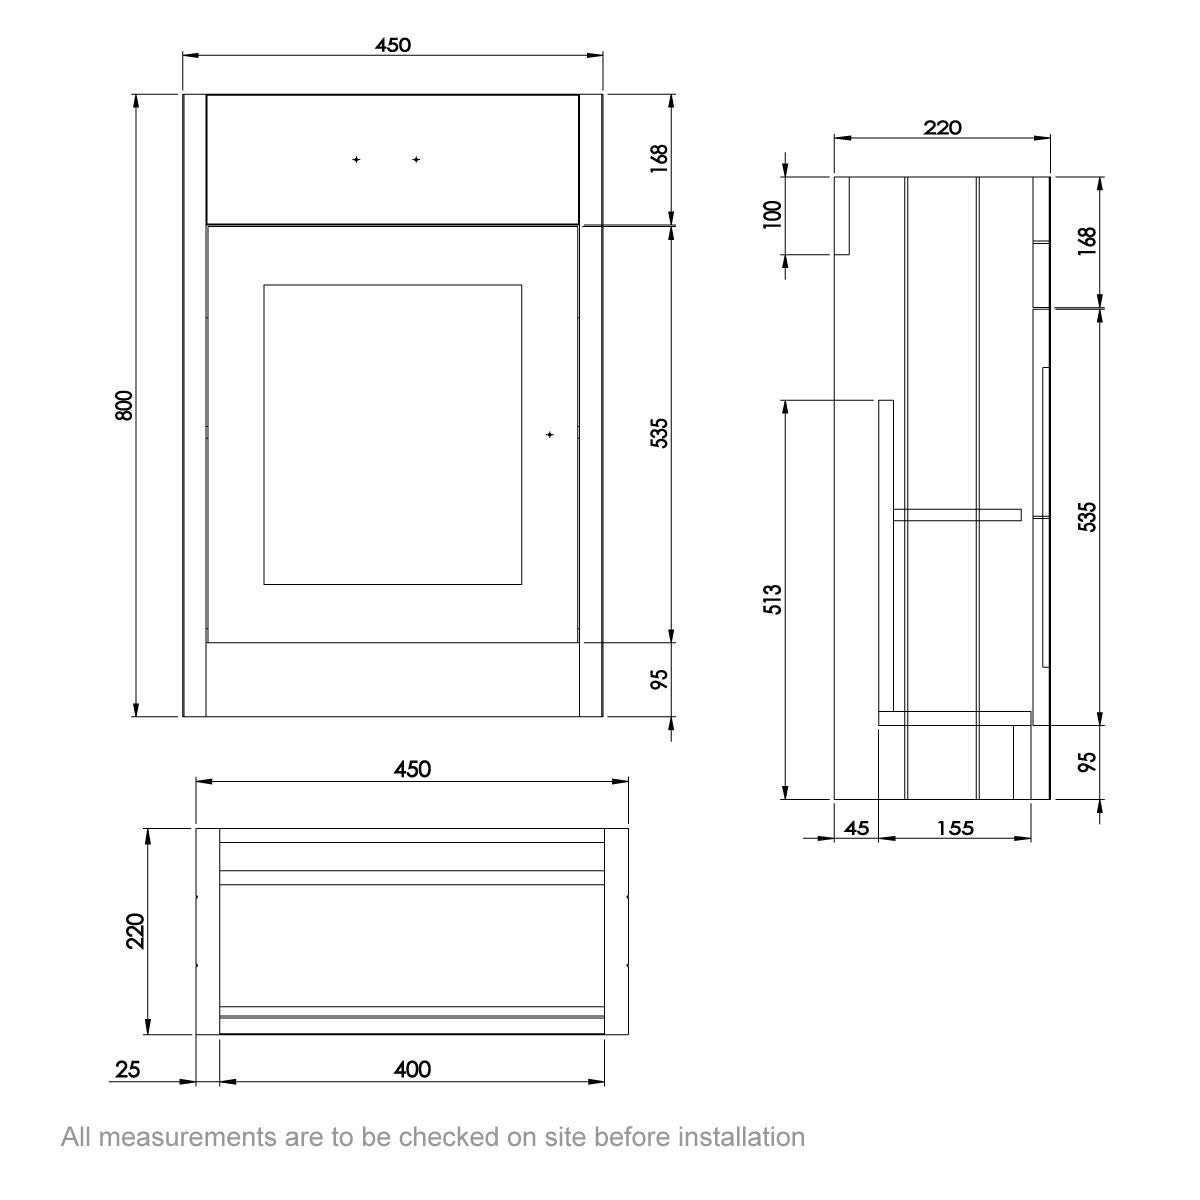 Dimensions for The Bath Co. Dulwich stone grey cloakroom vanity with basin 450mm